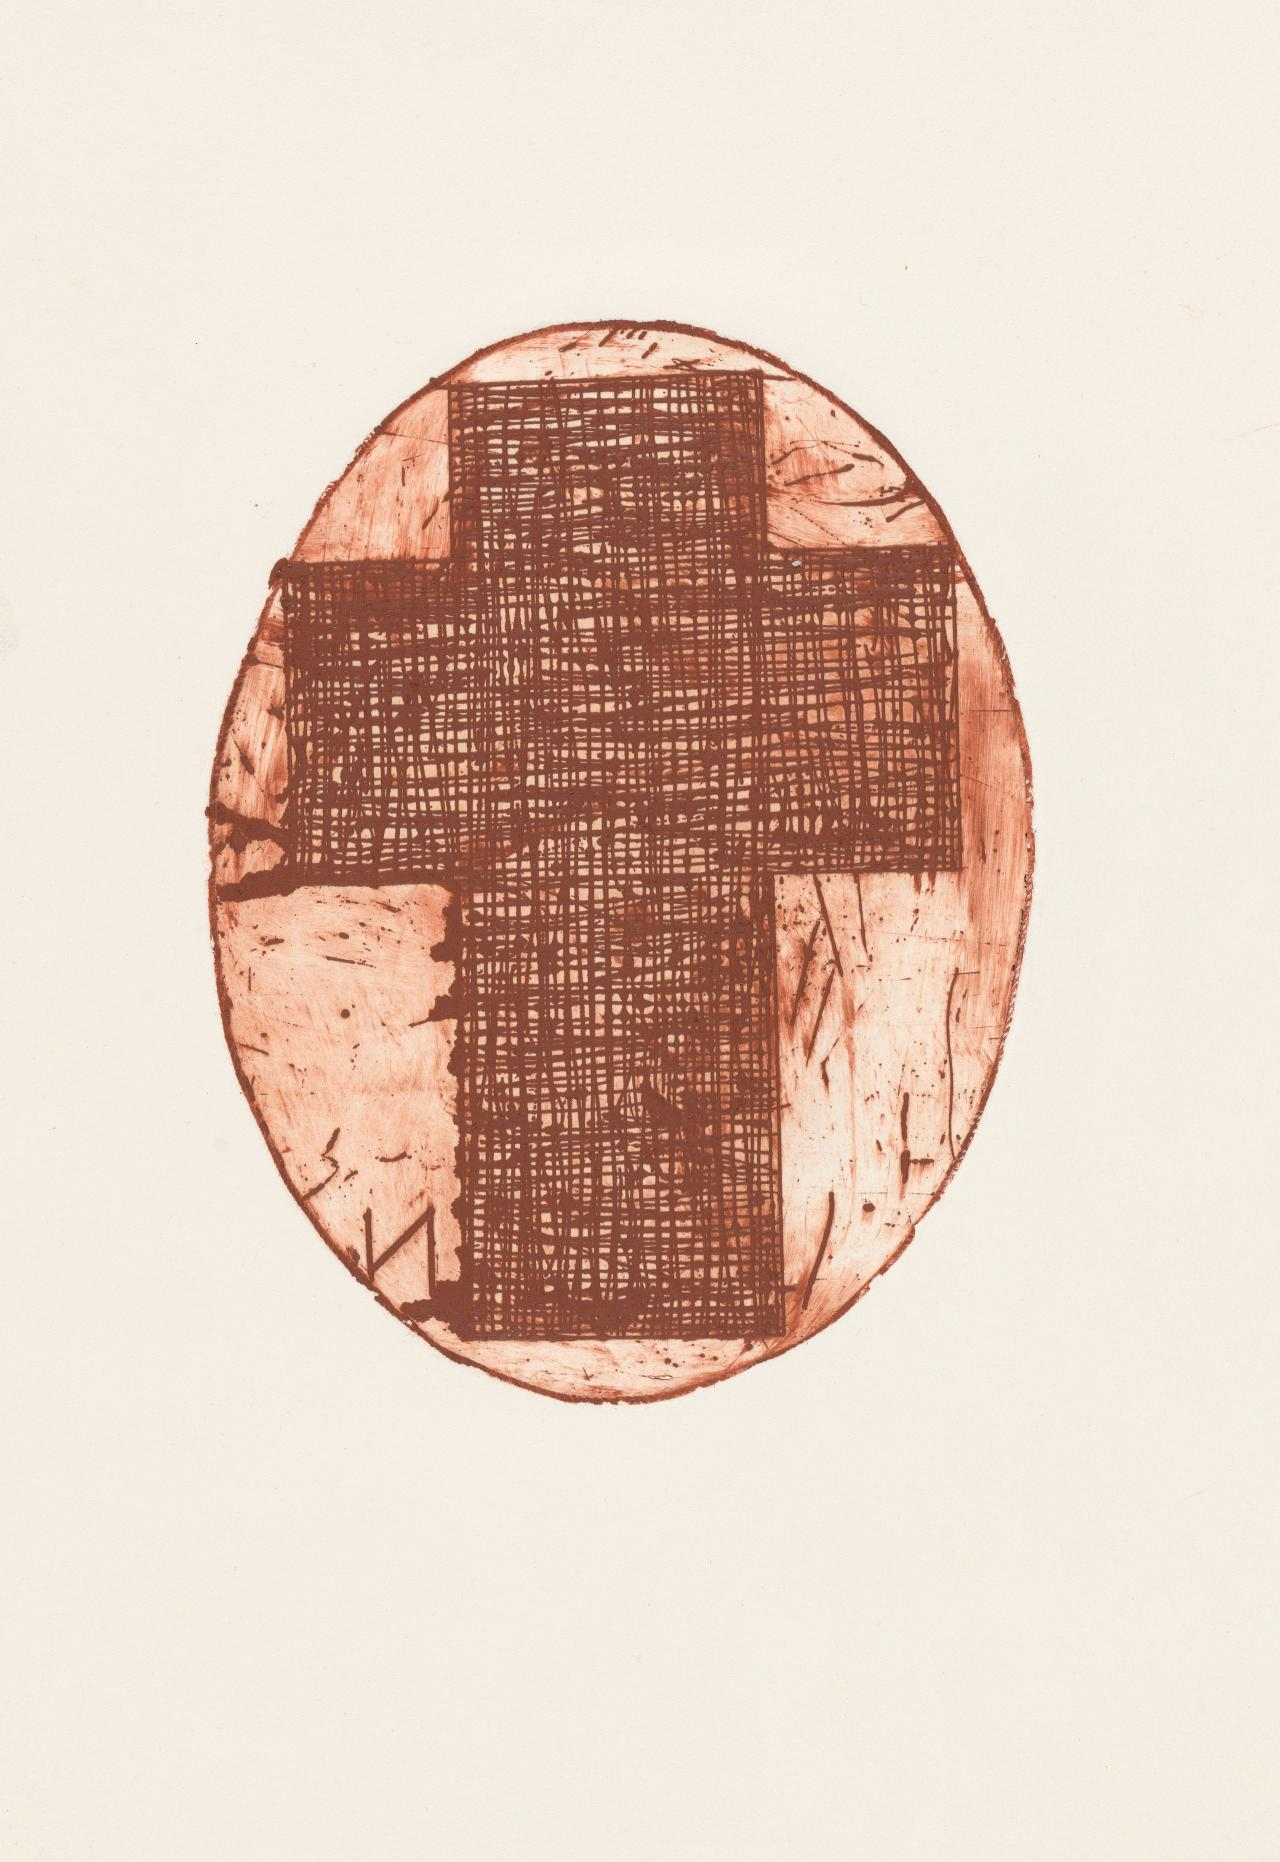 Untitled (Cross within oval)